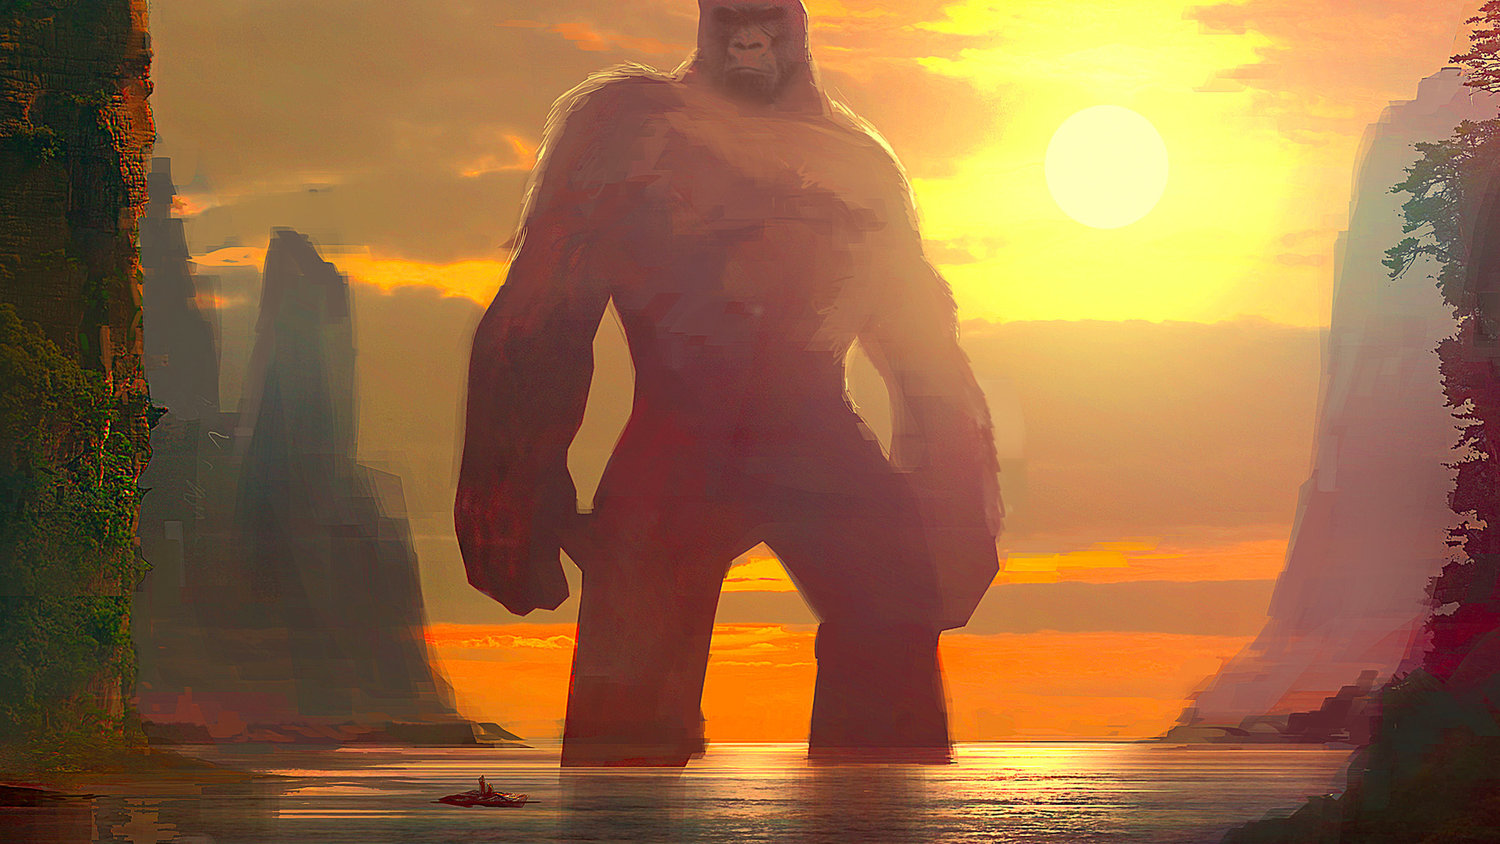 Check Out This Awesome KONG: SKULL ISLAND Concept Art